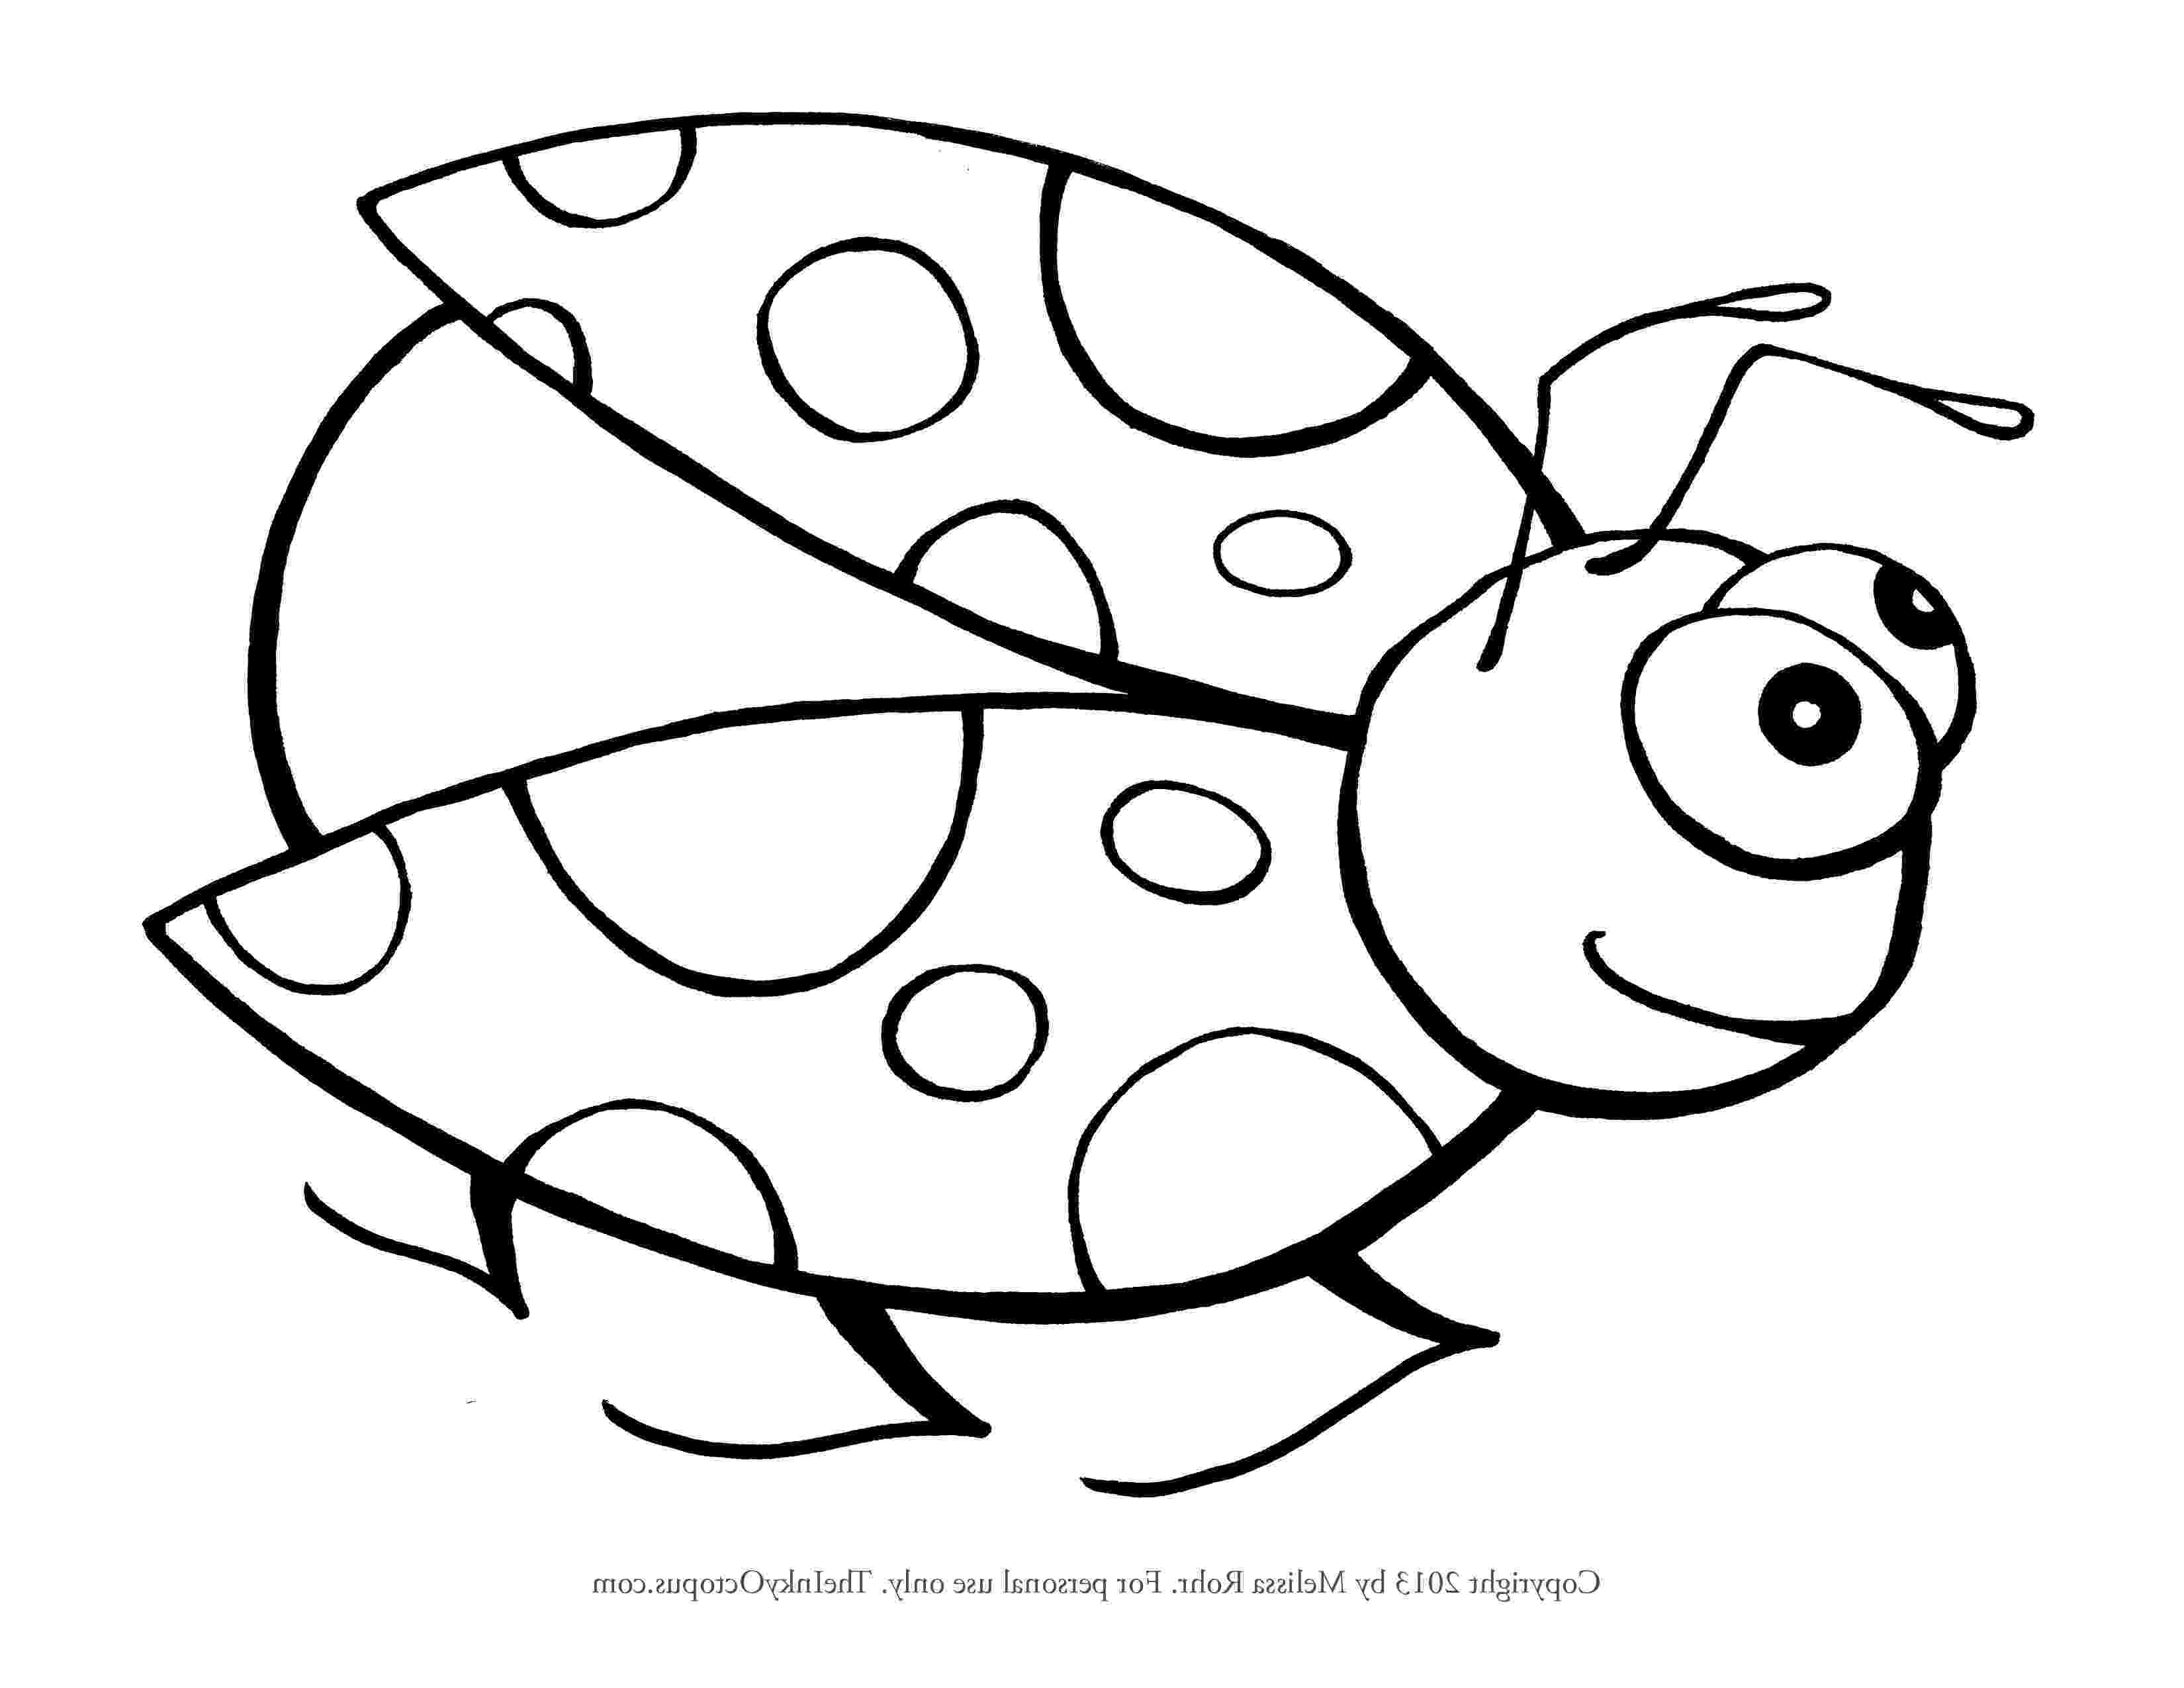 ladybird colouring page free ladybug coloring page lb4 page ladybird colouring